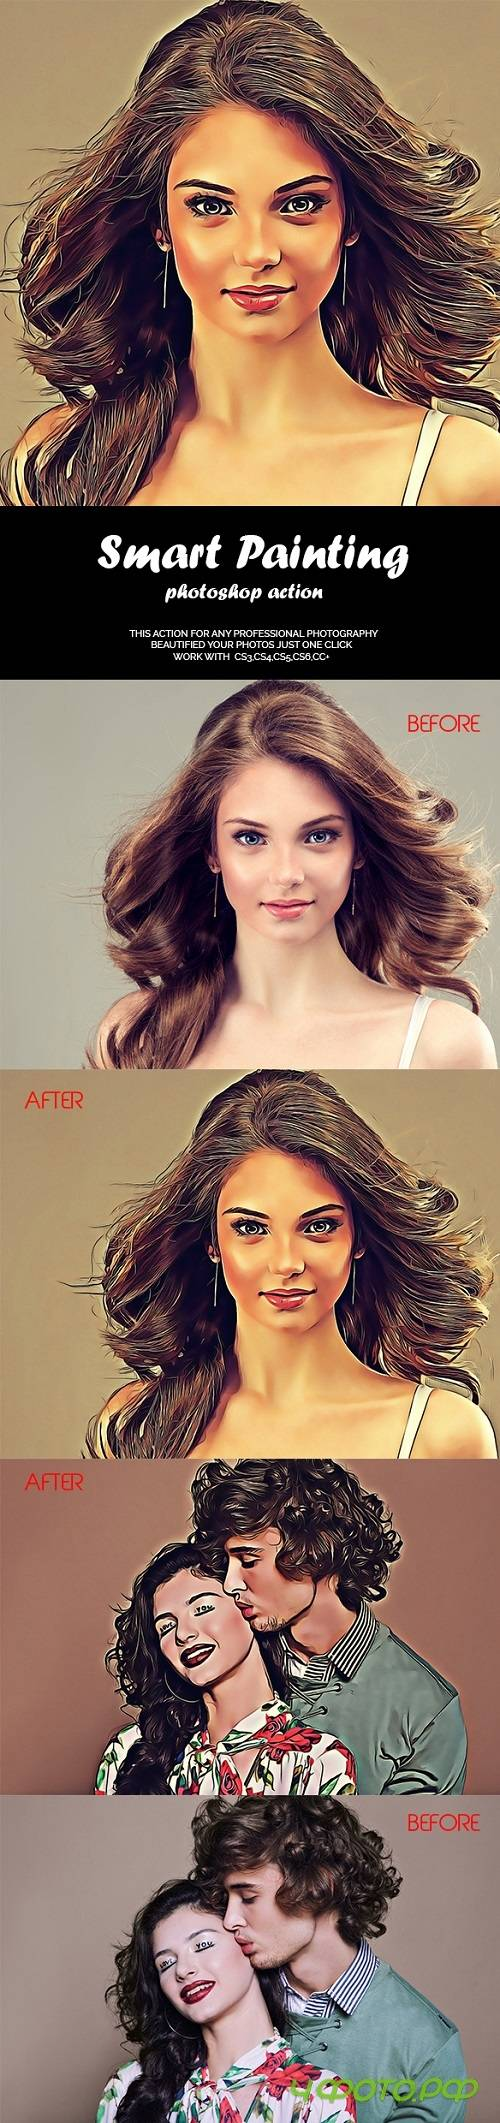 Smart Painting Photoshop Action 21139558